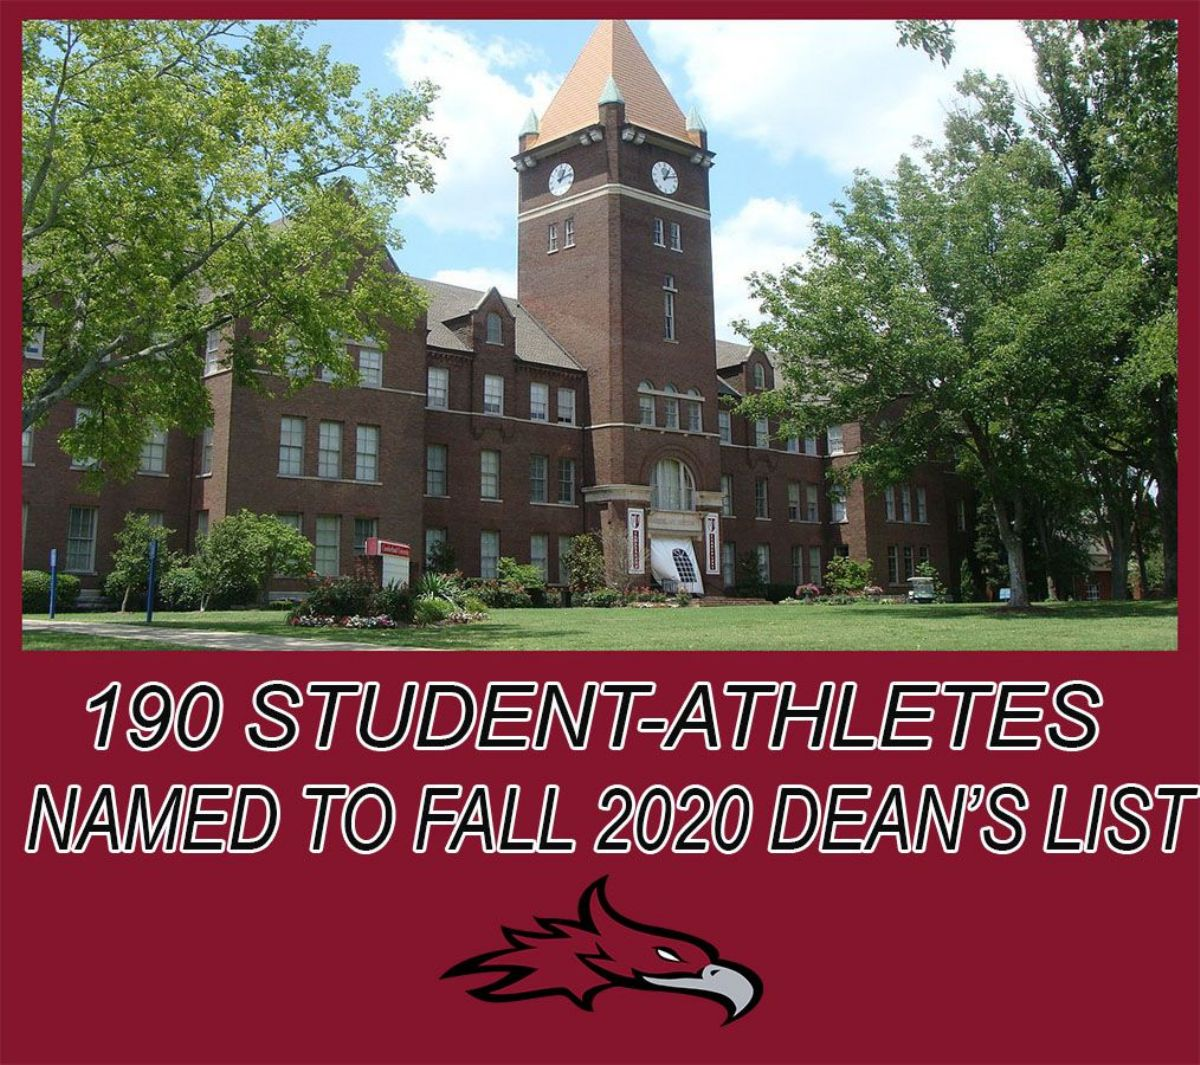 190 Student-Athletes named to Fall 2020 Dean's List